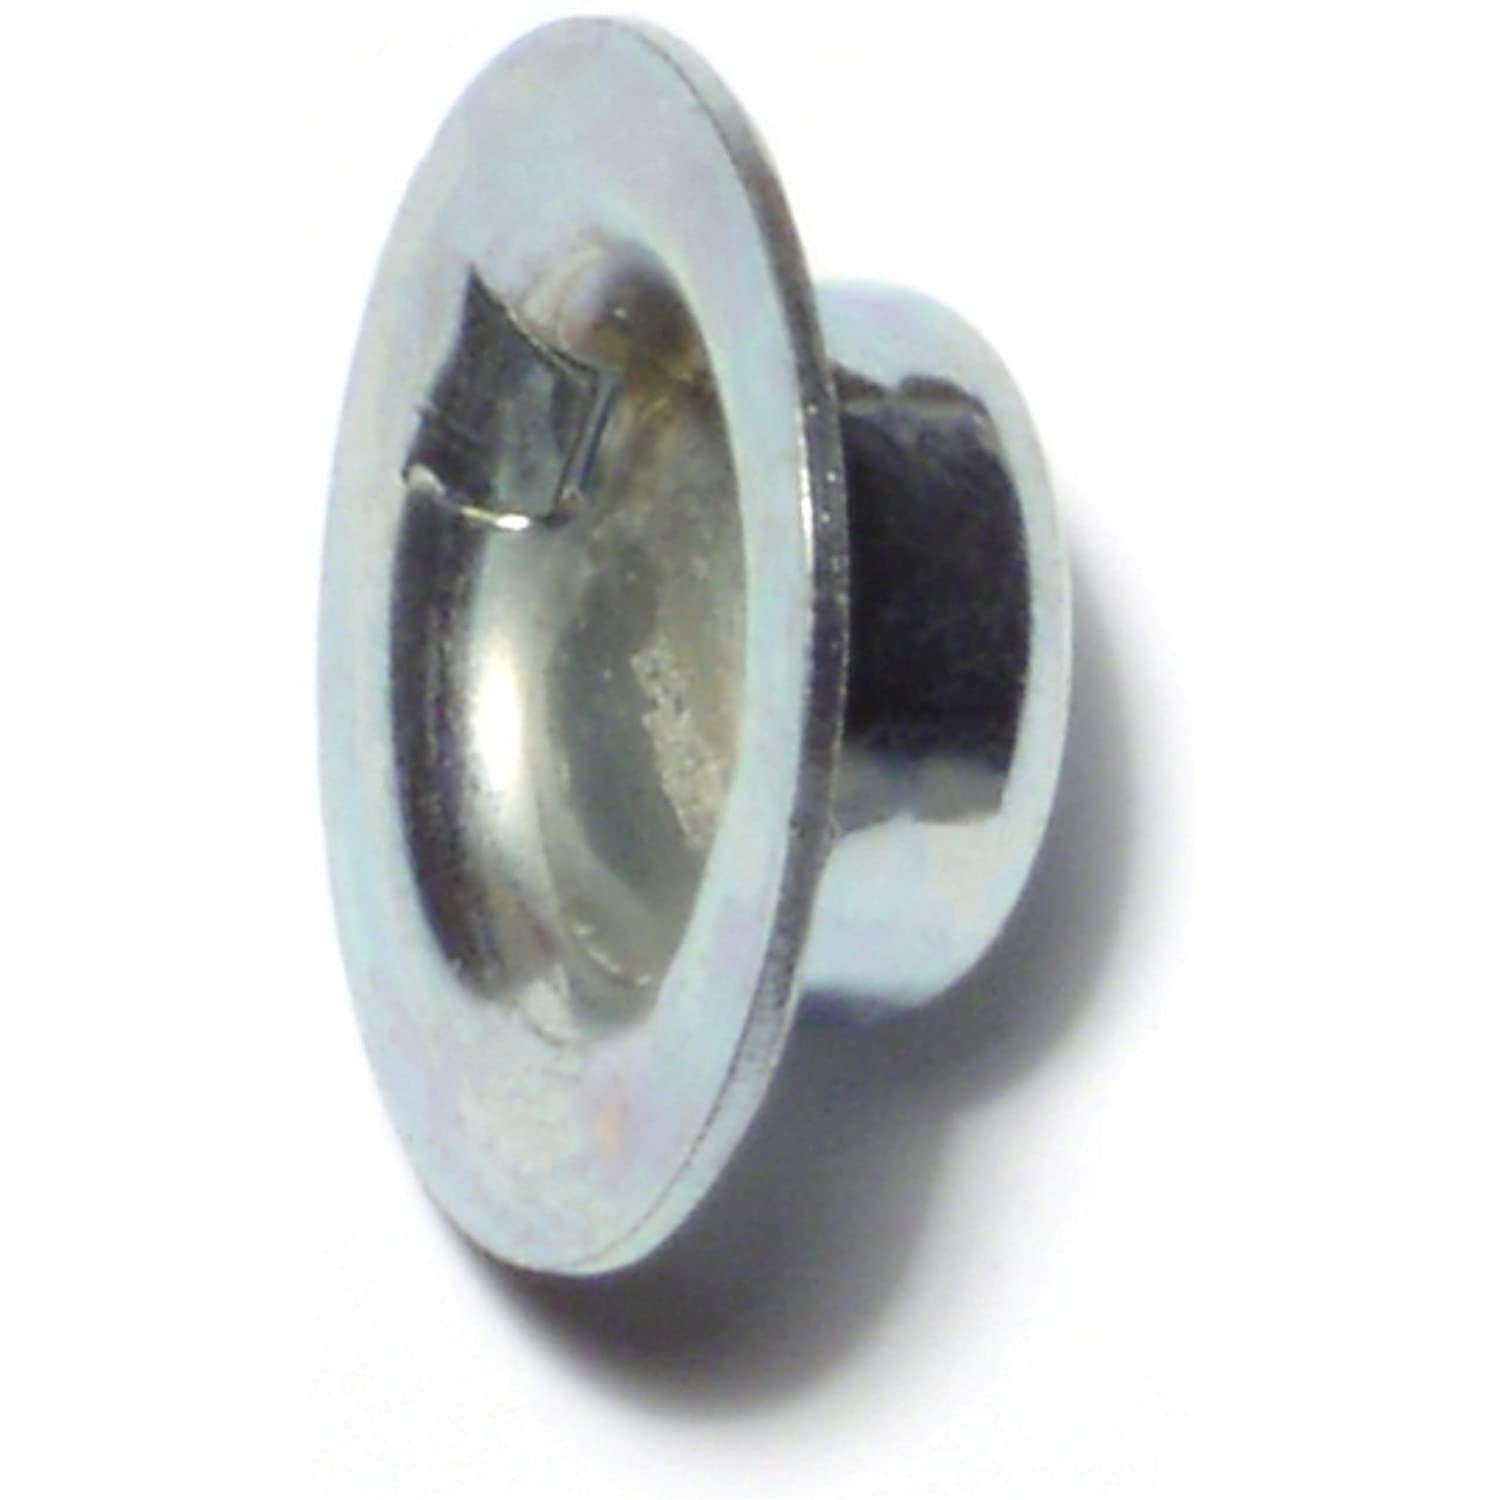 Hard-to-Find Fastener 014973222420 Washer Cap Push Nuts, 1/2-Inch